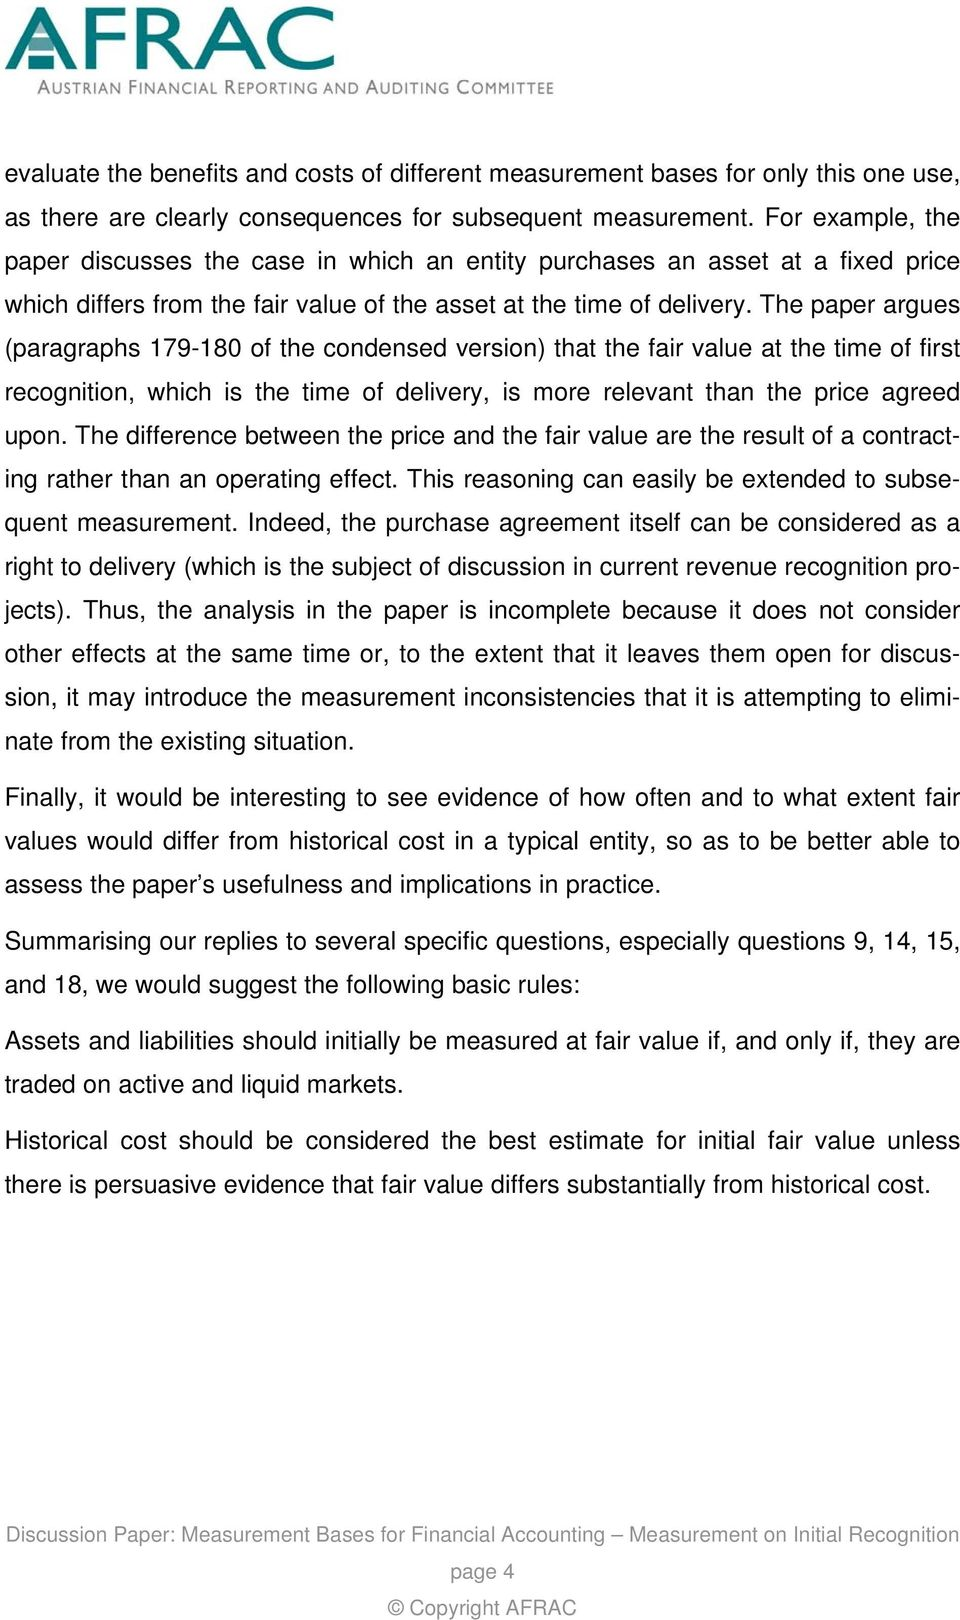 The paper argues (paragraphs 179-180 of the condensed version) that the fair value at the time of first recognition, which is the time of delivery, is more relevant than the price agreed upon.